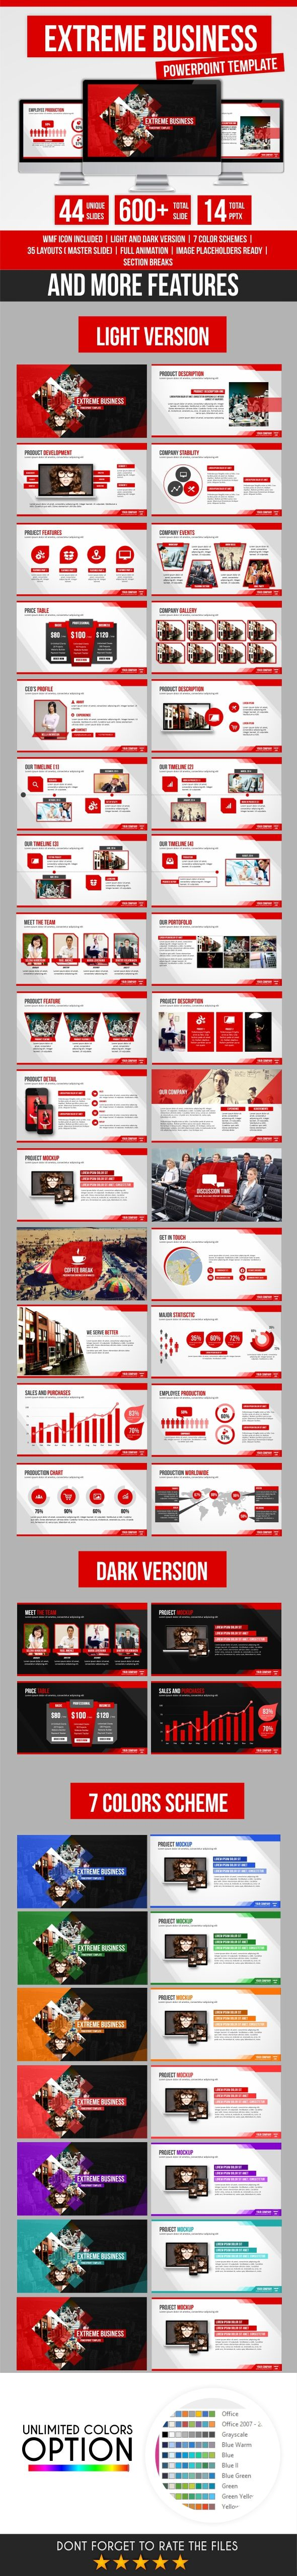 EXTREME BUSINESS POWERPOINT TEMPLATE on Behance, maybe less angles and adjust red for new look